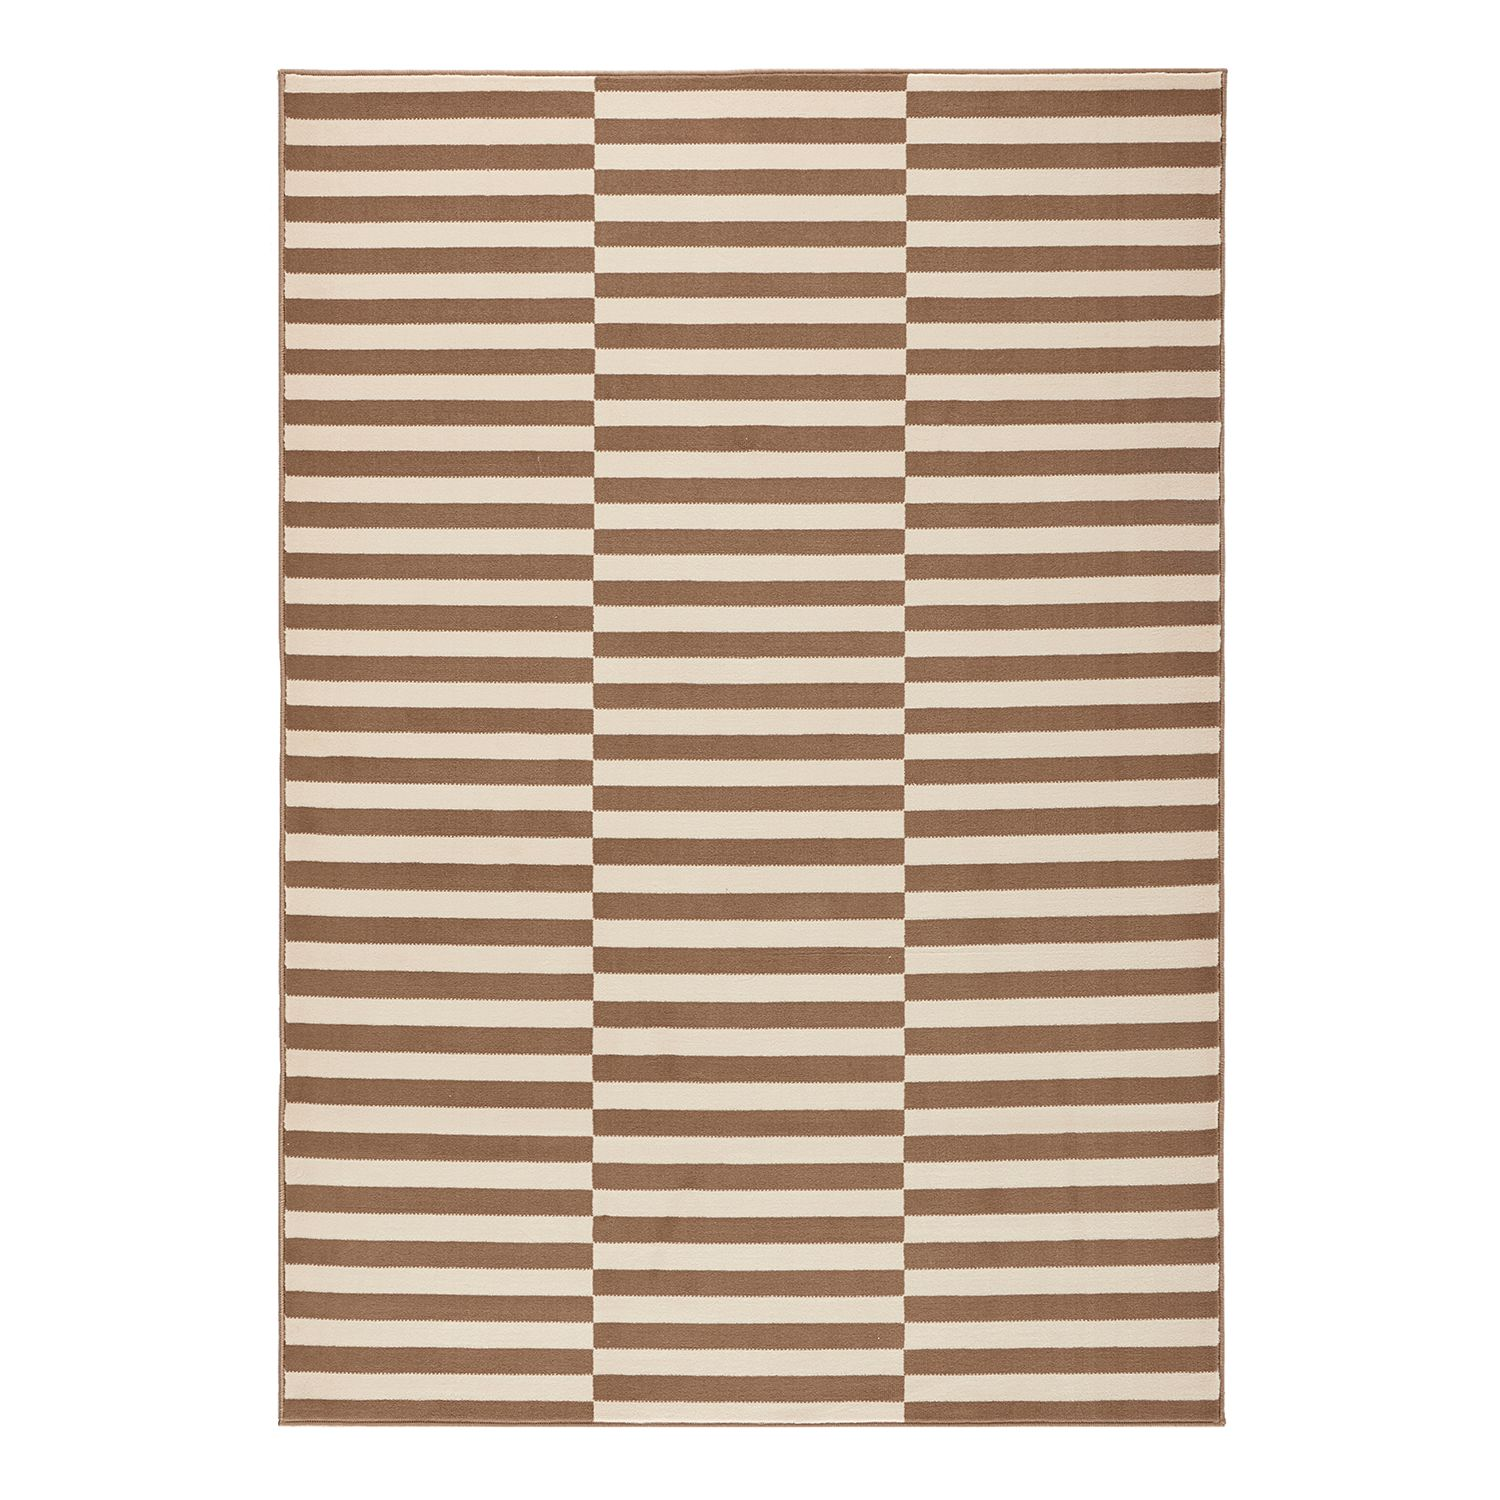 Ikea Teppich 80x150 Teppich 80x150 Good Teppich Modern City Sisal Optik